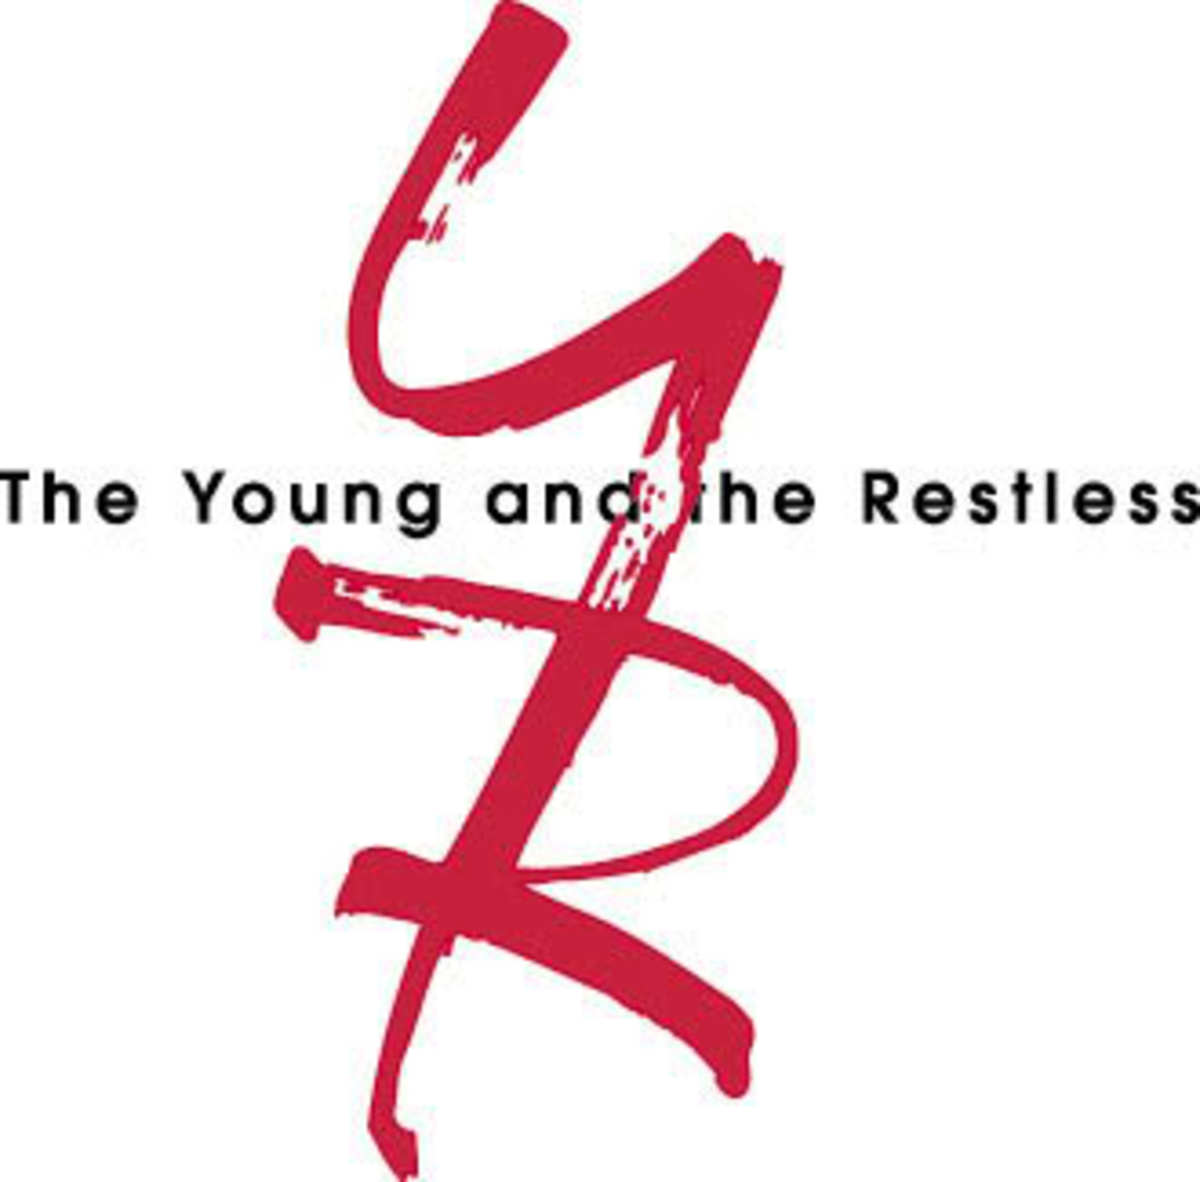 The Young and Restless